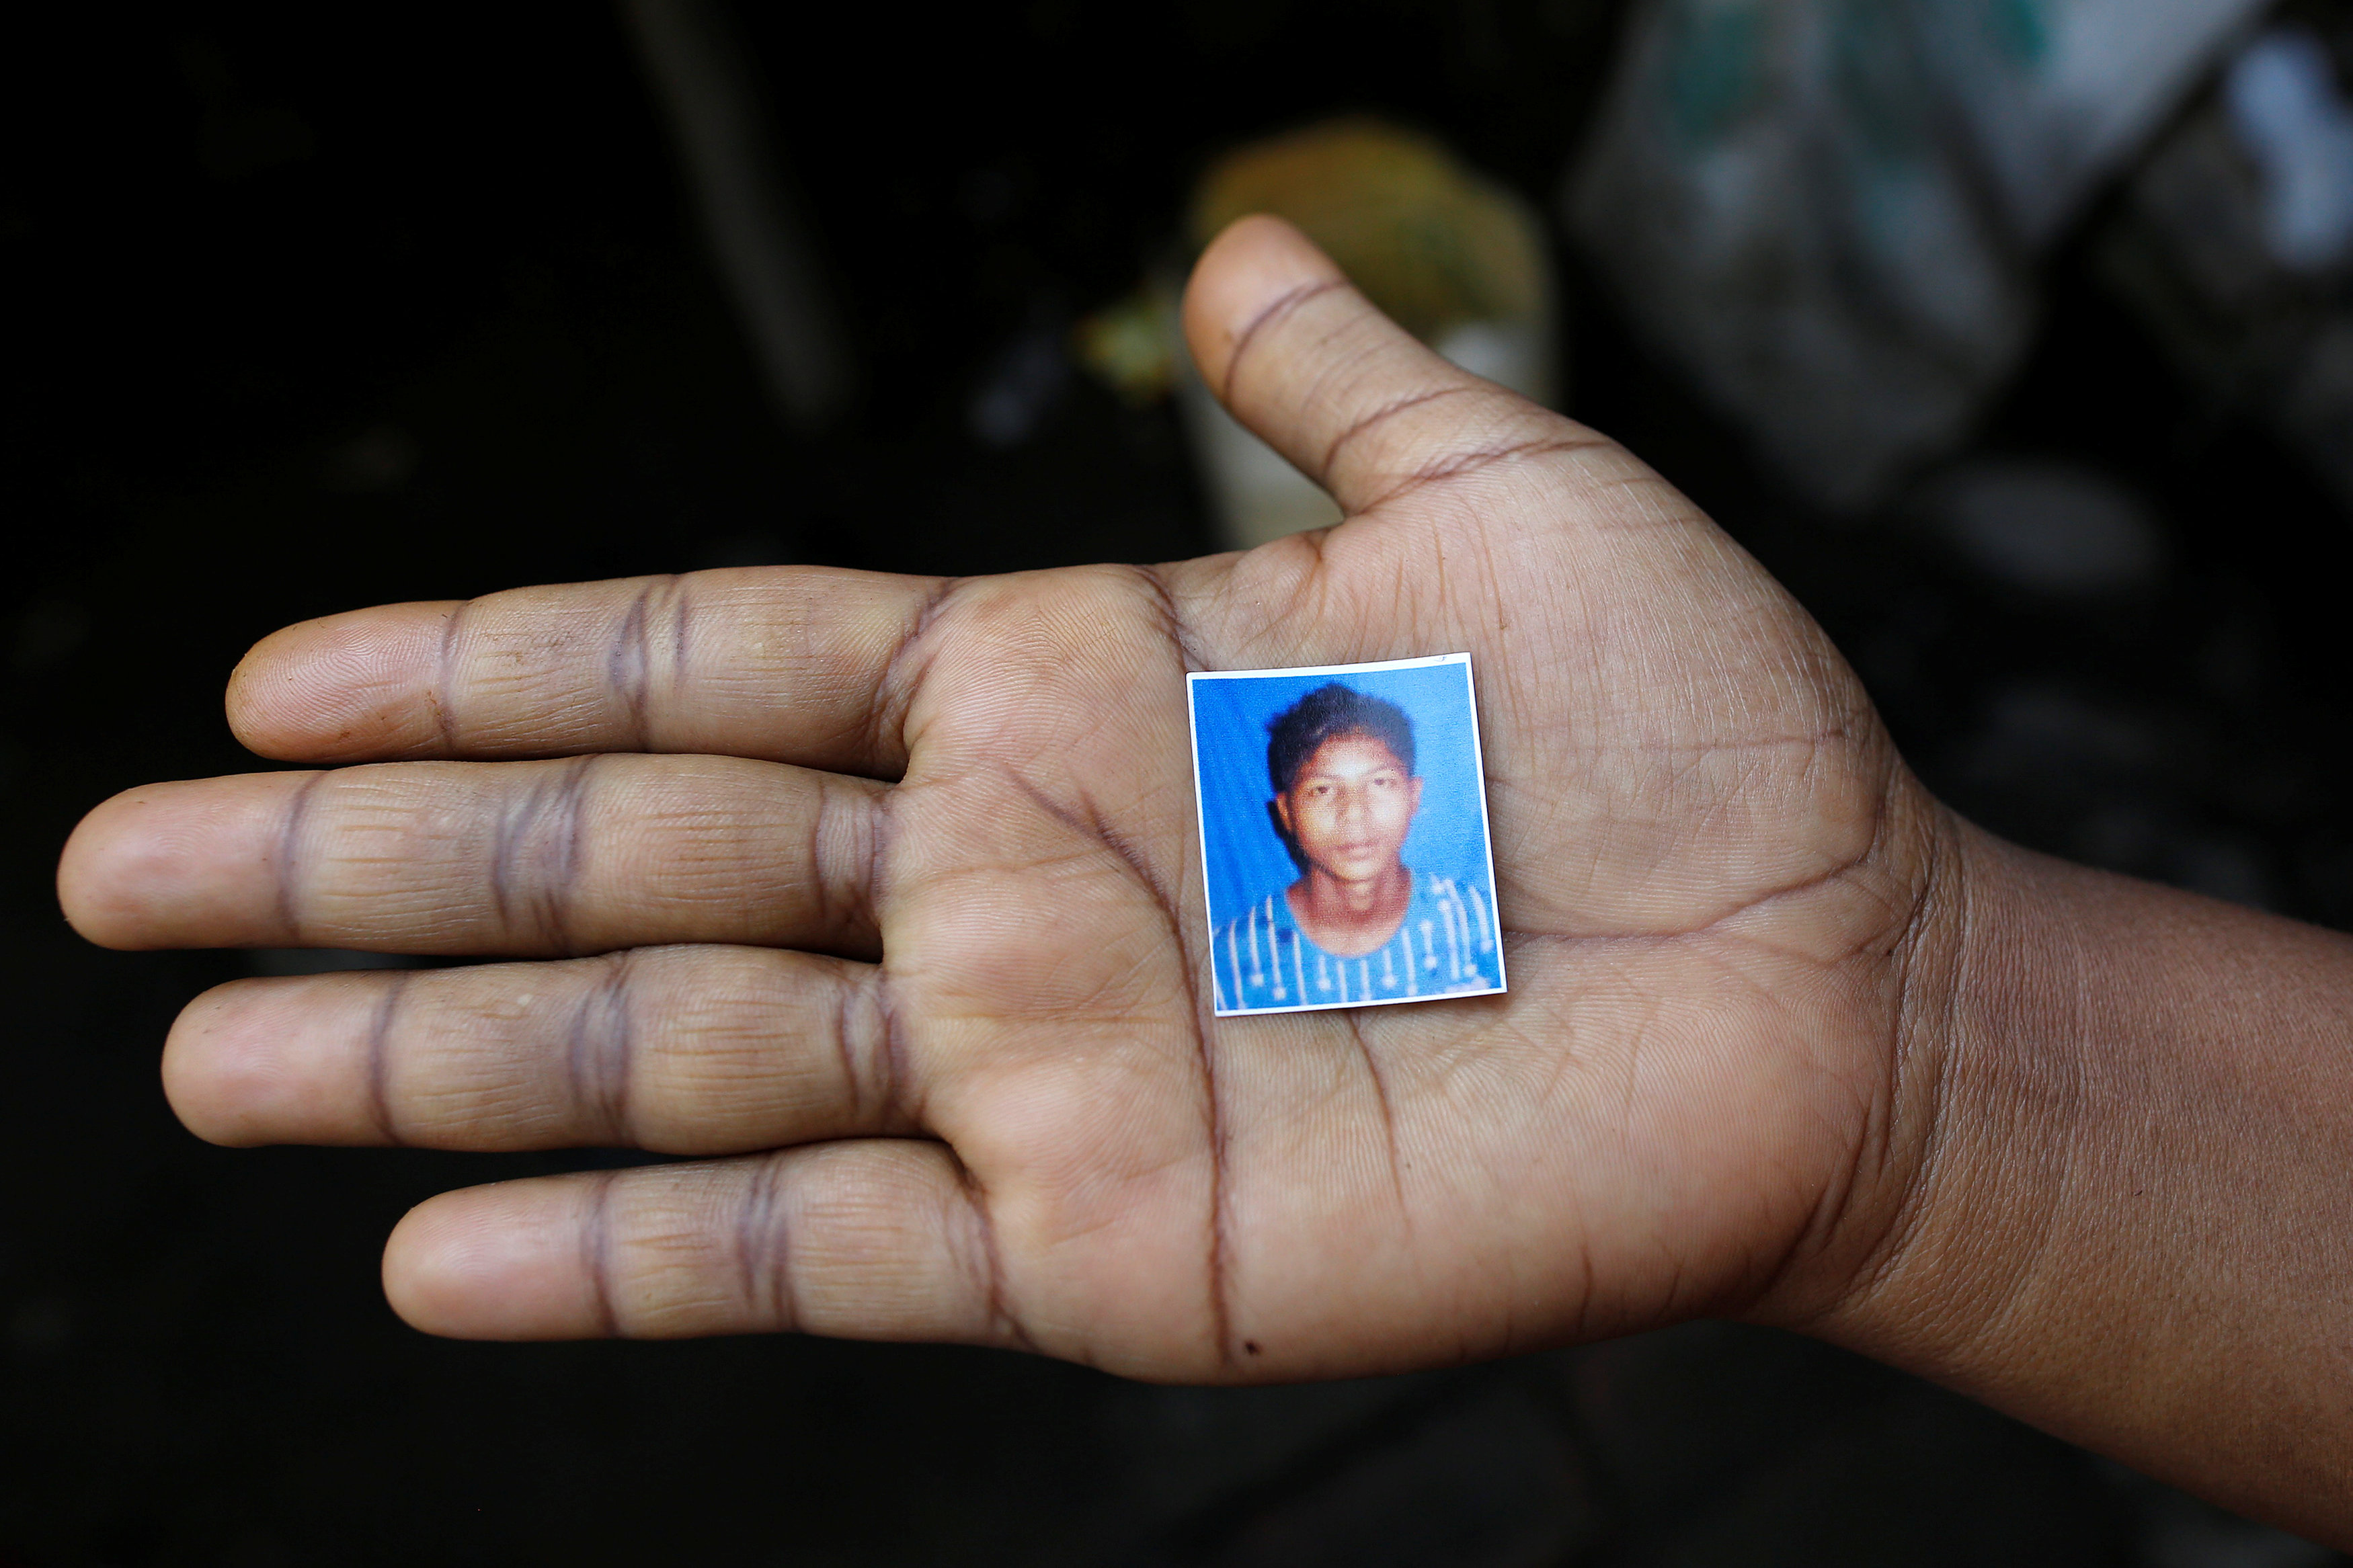 A relative holds a picture of detained Rohingya fisherman Mohammed Enus, 18, in Sittwe in the state of Rakhine, Myanmar March 2, 2017. Credit: Reuters/Soe Zeya Tun